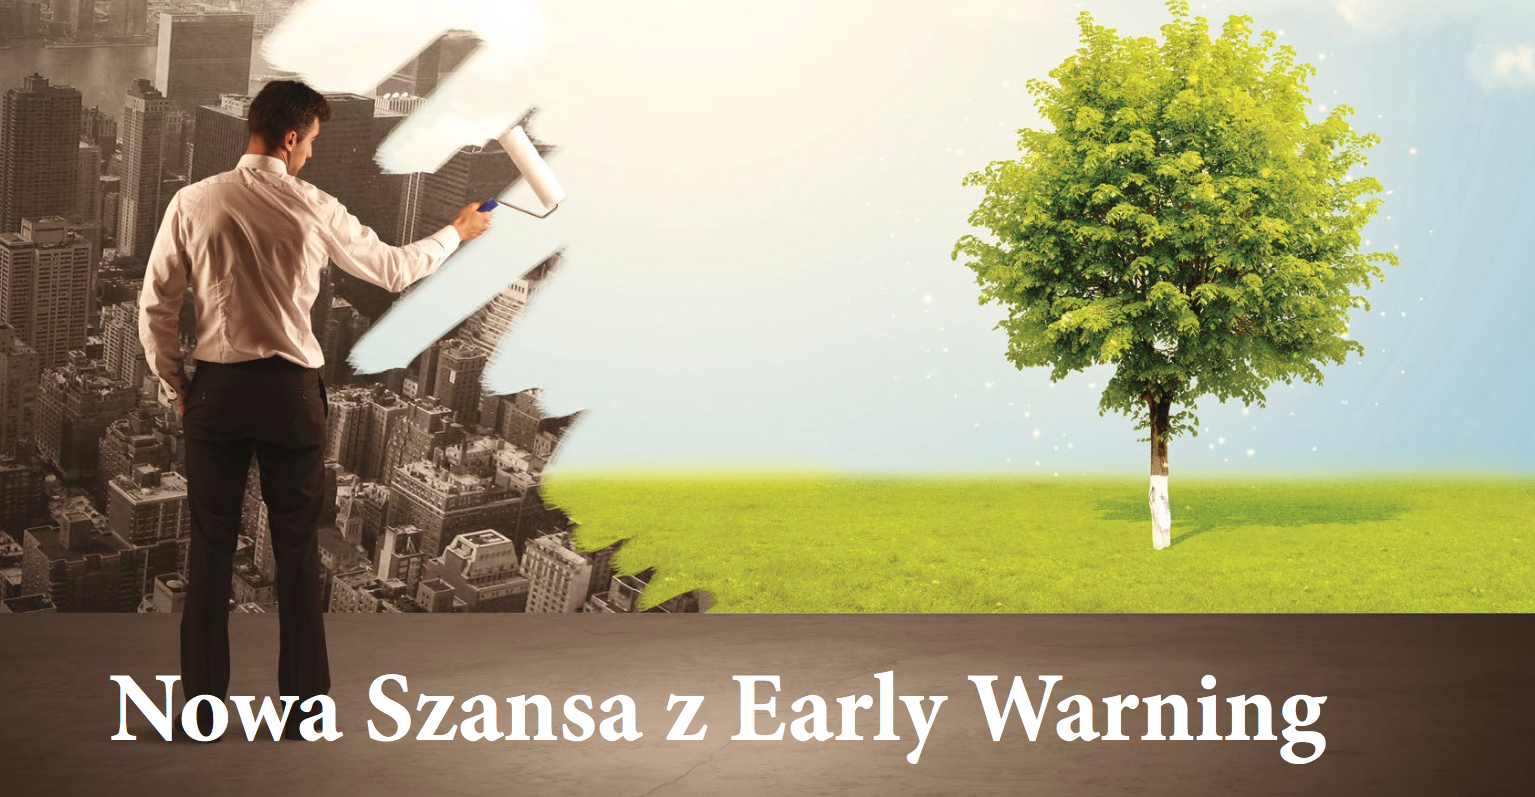 Nowa Szansa z Early Warning